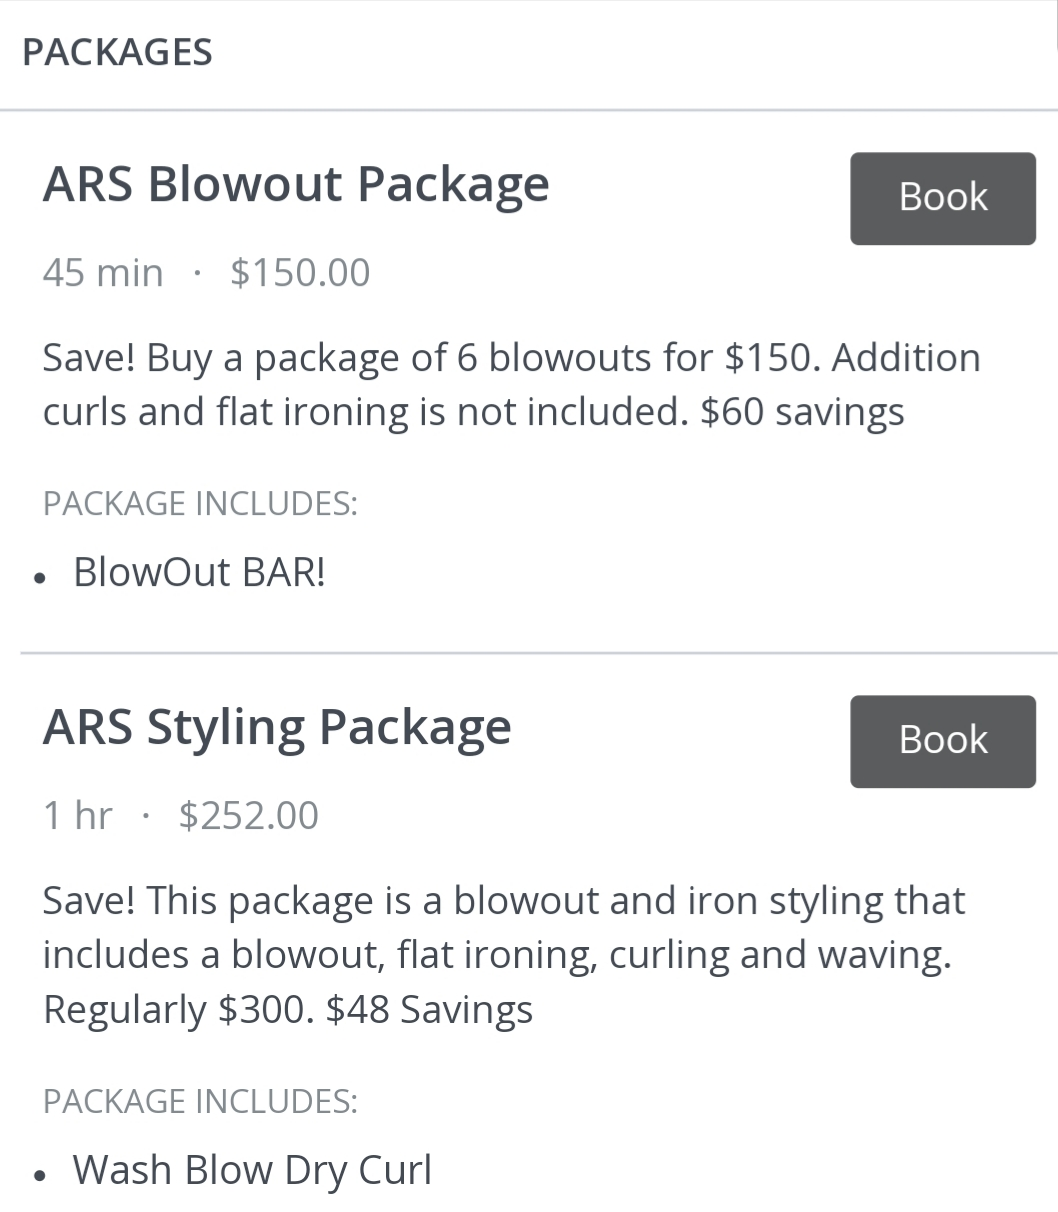 Blowout and Styling Package